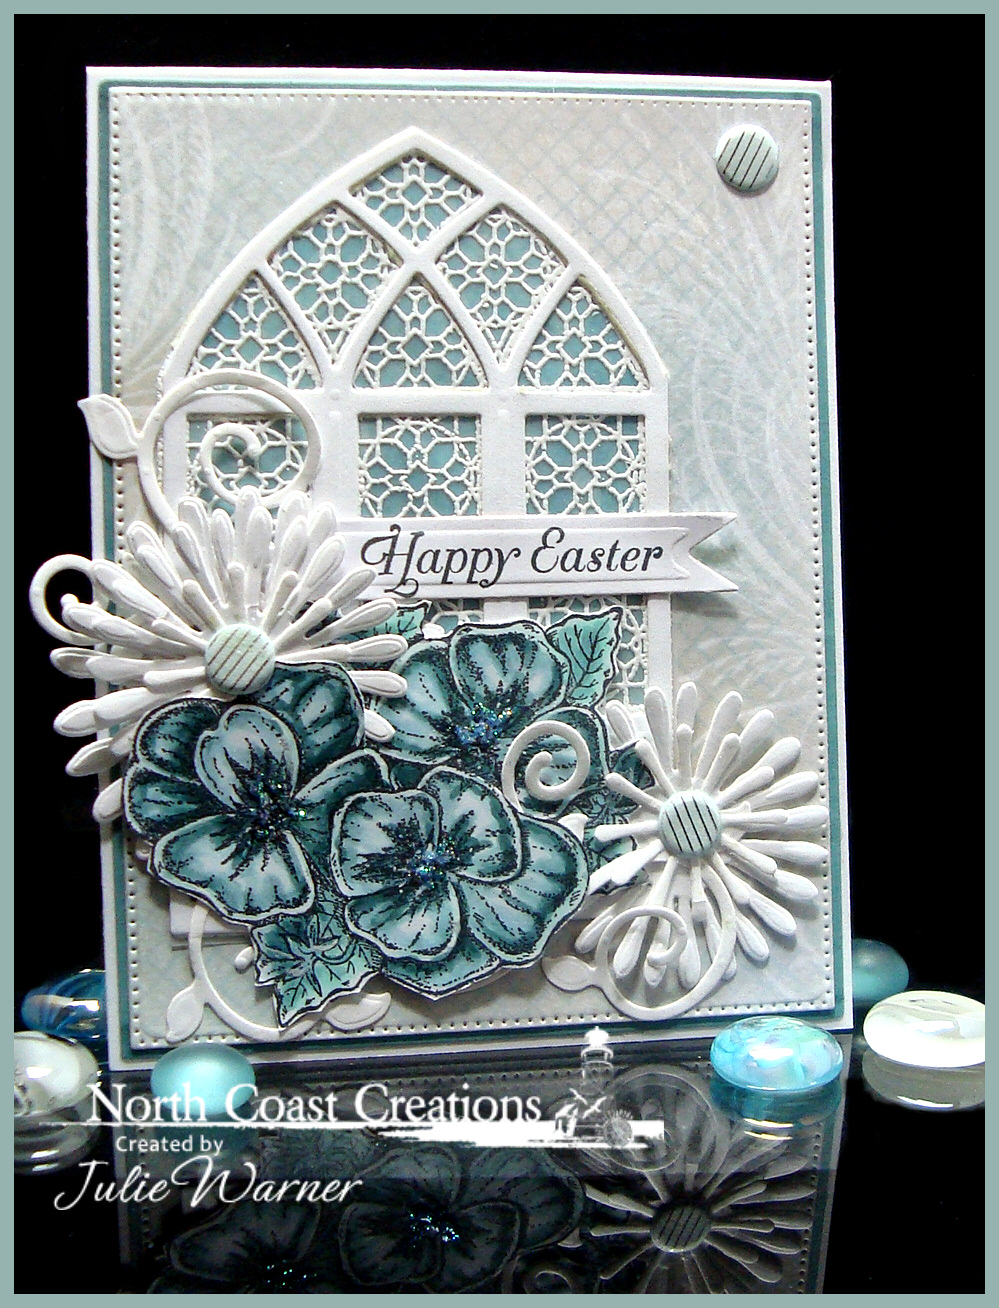 Stamps - North Coast Creations Pansies, ODBD Custom Flourished Star Pattern Die, ODBD Custom Cathedral Window Die, ODBD Cusotm Asters and Leaves Dies, ODBD Custom Fancy Foliage Die, ODBD Cathedral Window Marble, ODBD Shabby Rose Paper Collection